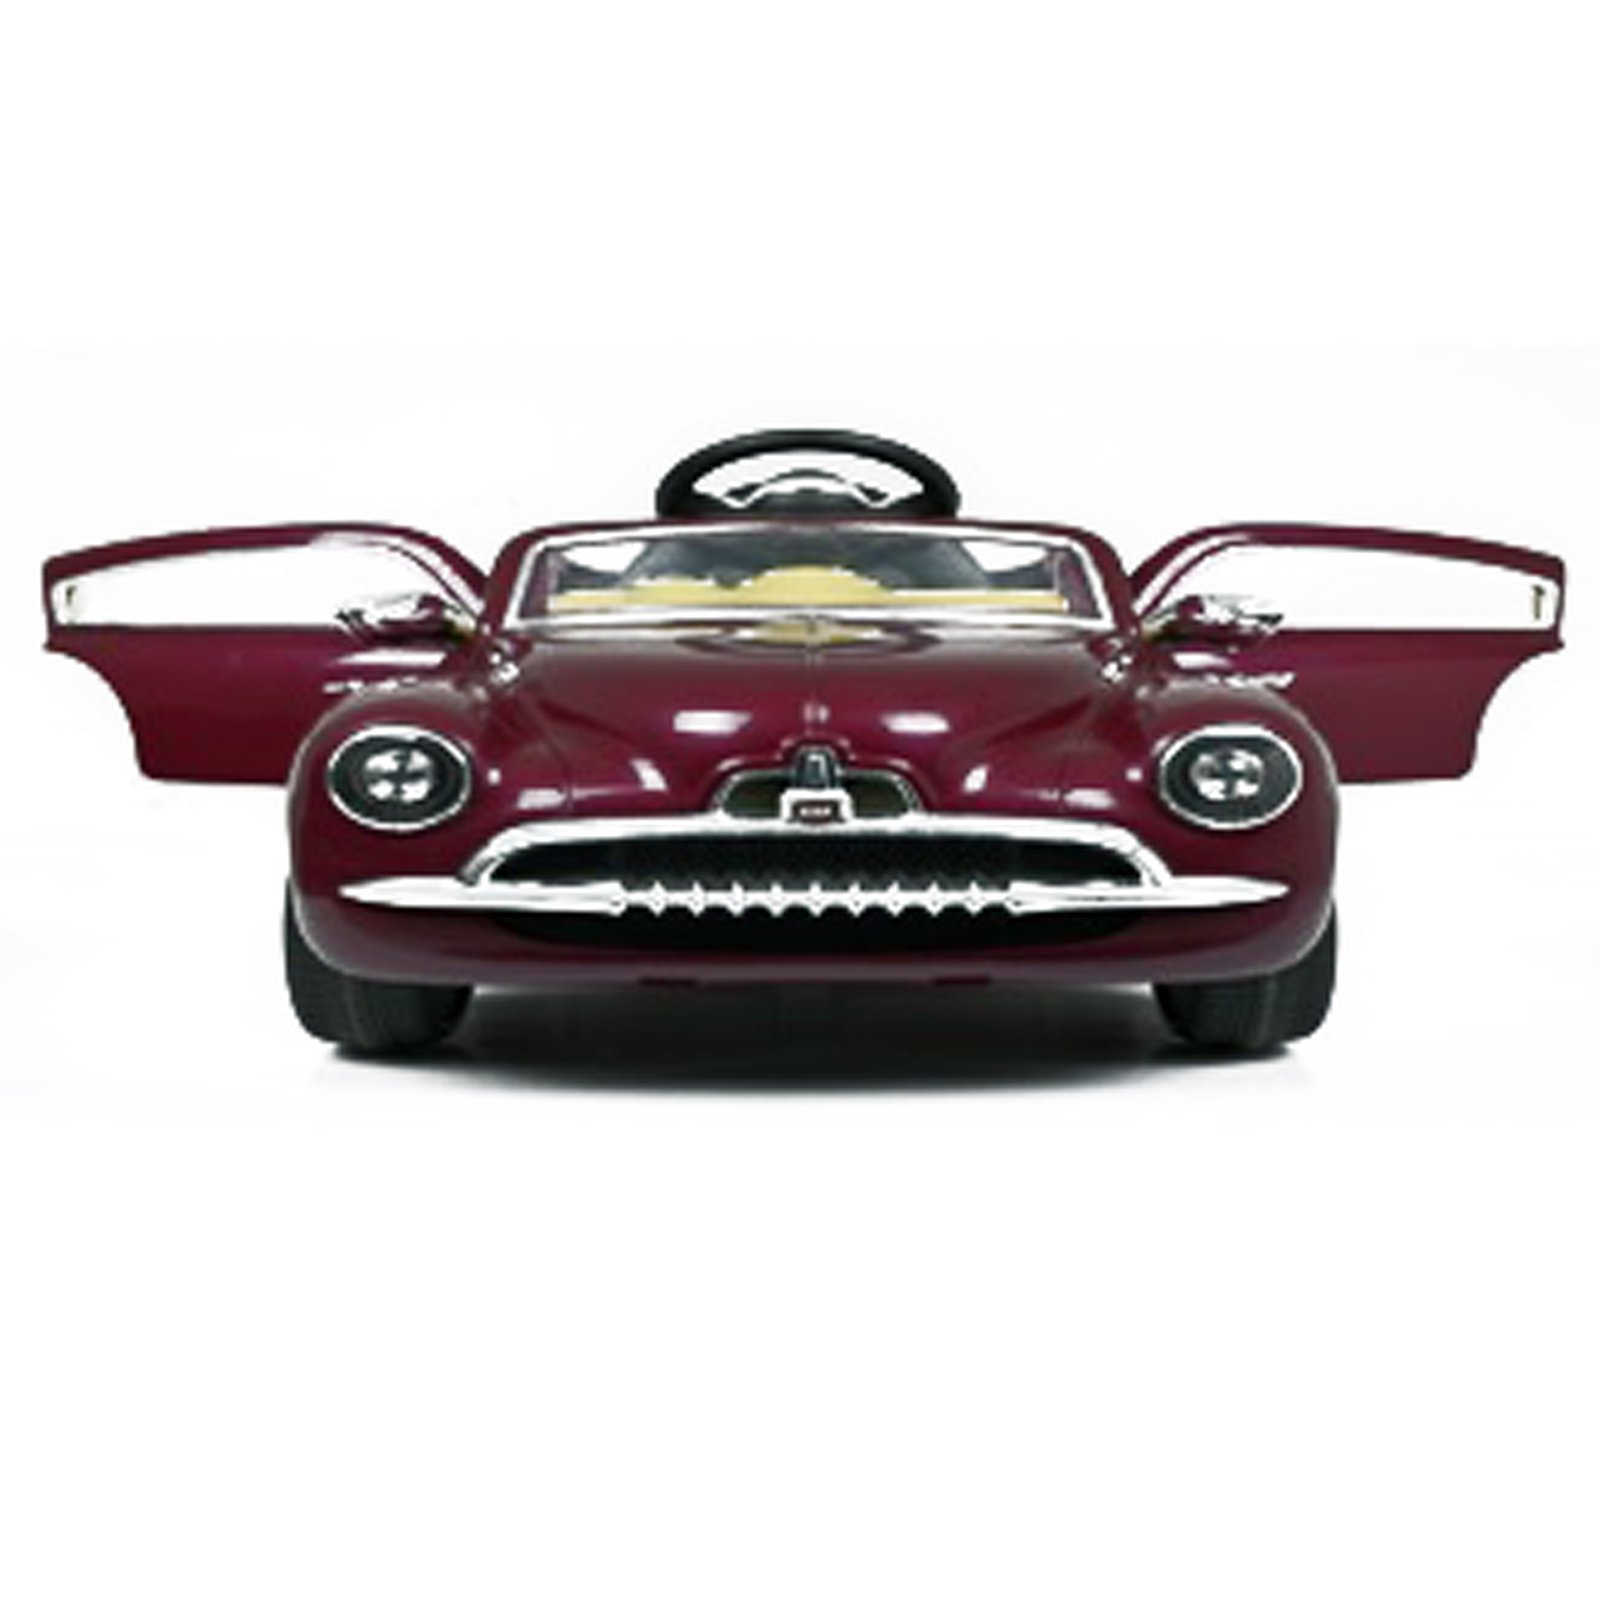 1949 Classic Kids Ride On Car Battery Powered 12V Remote Control  - Burgundy